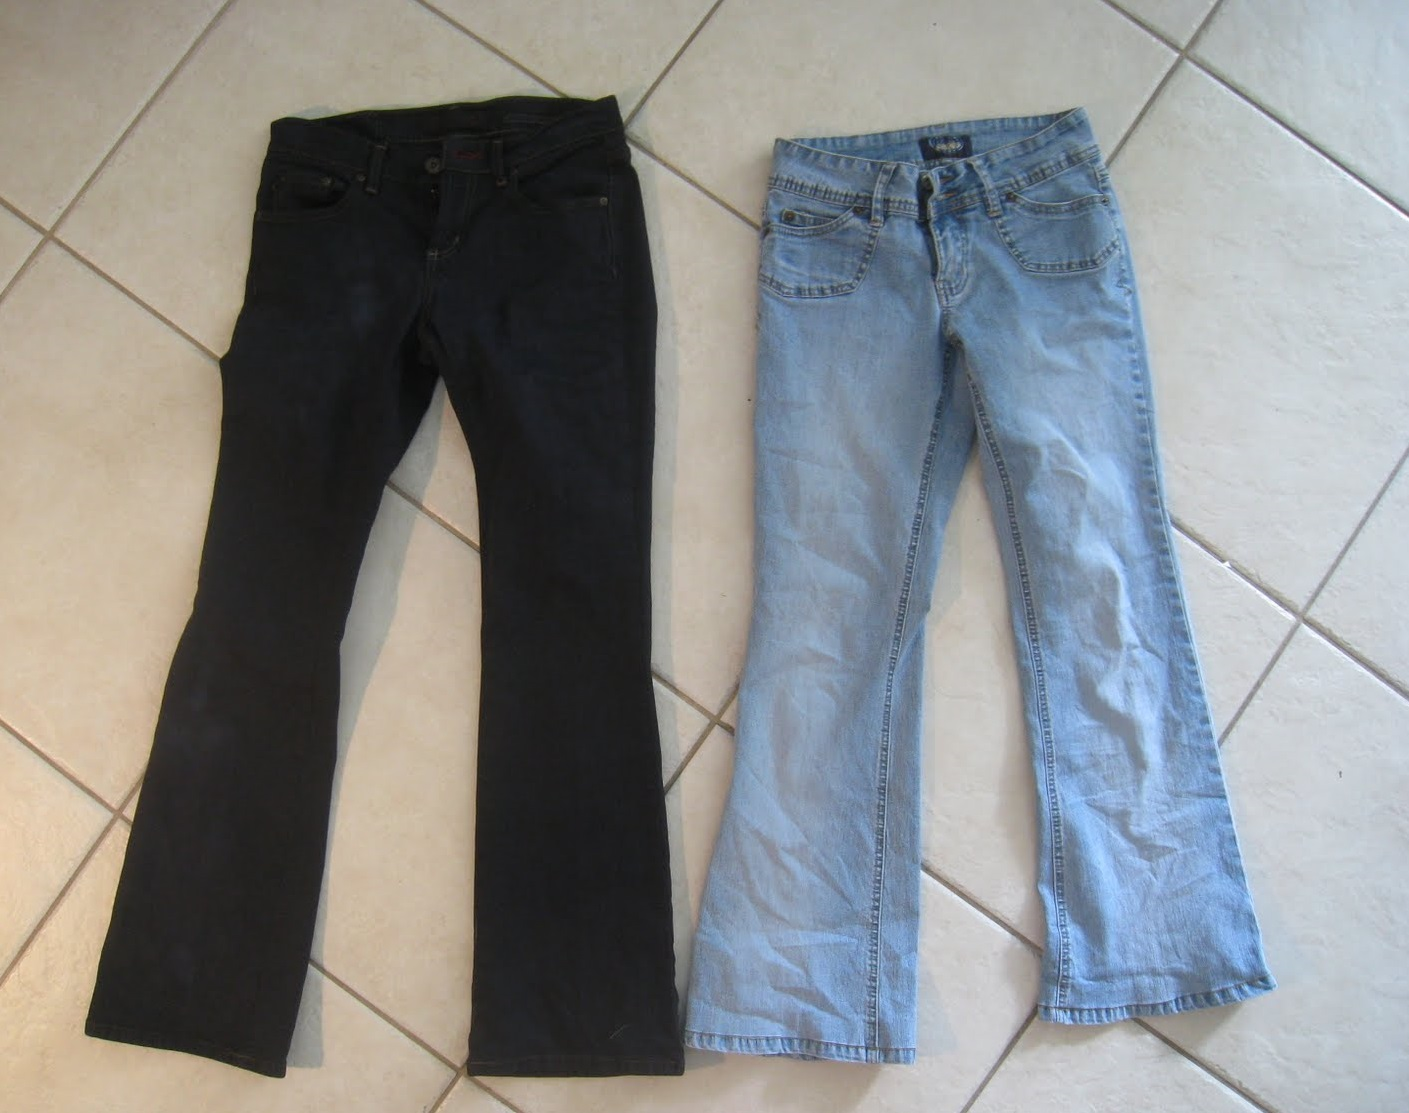 CLOTHES DYE for Jeans , Tops , Shirts , Fabric , Pants and MORE